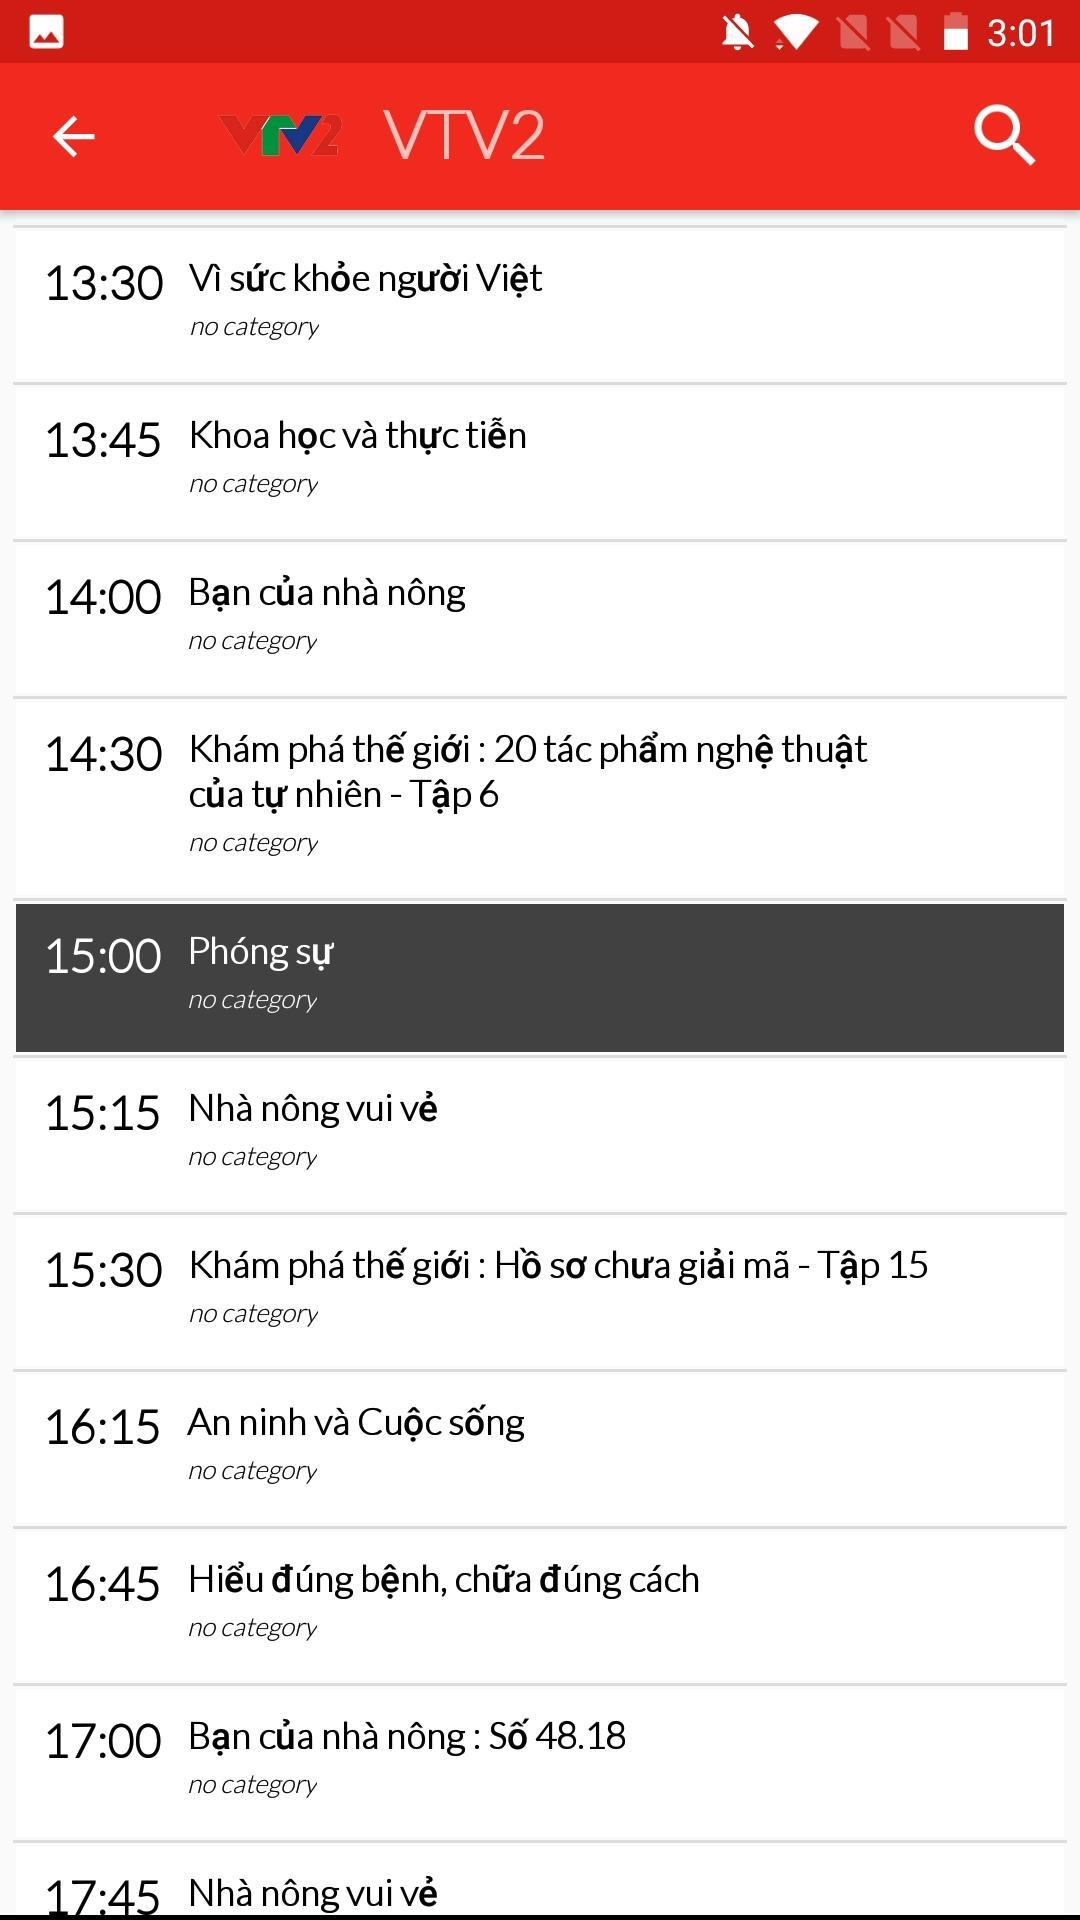 Vietnam Mobile TV Guide for Android - APK Download